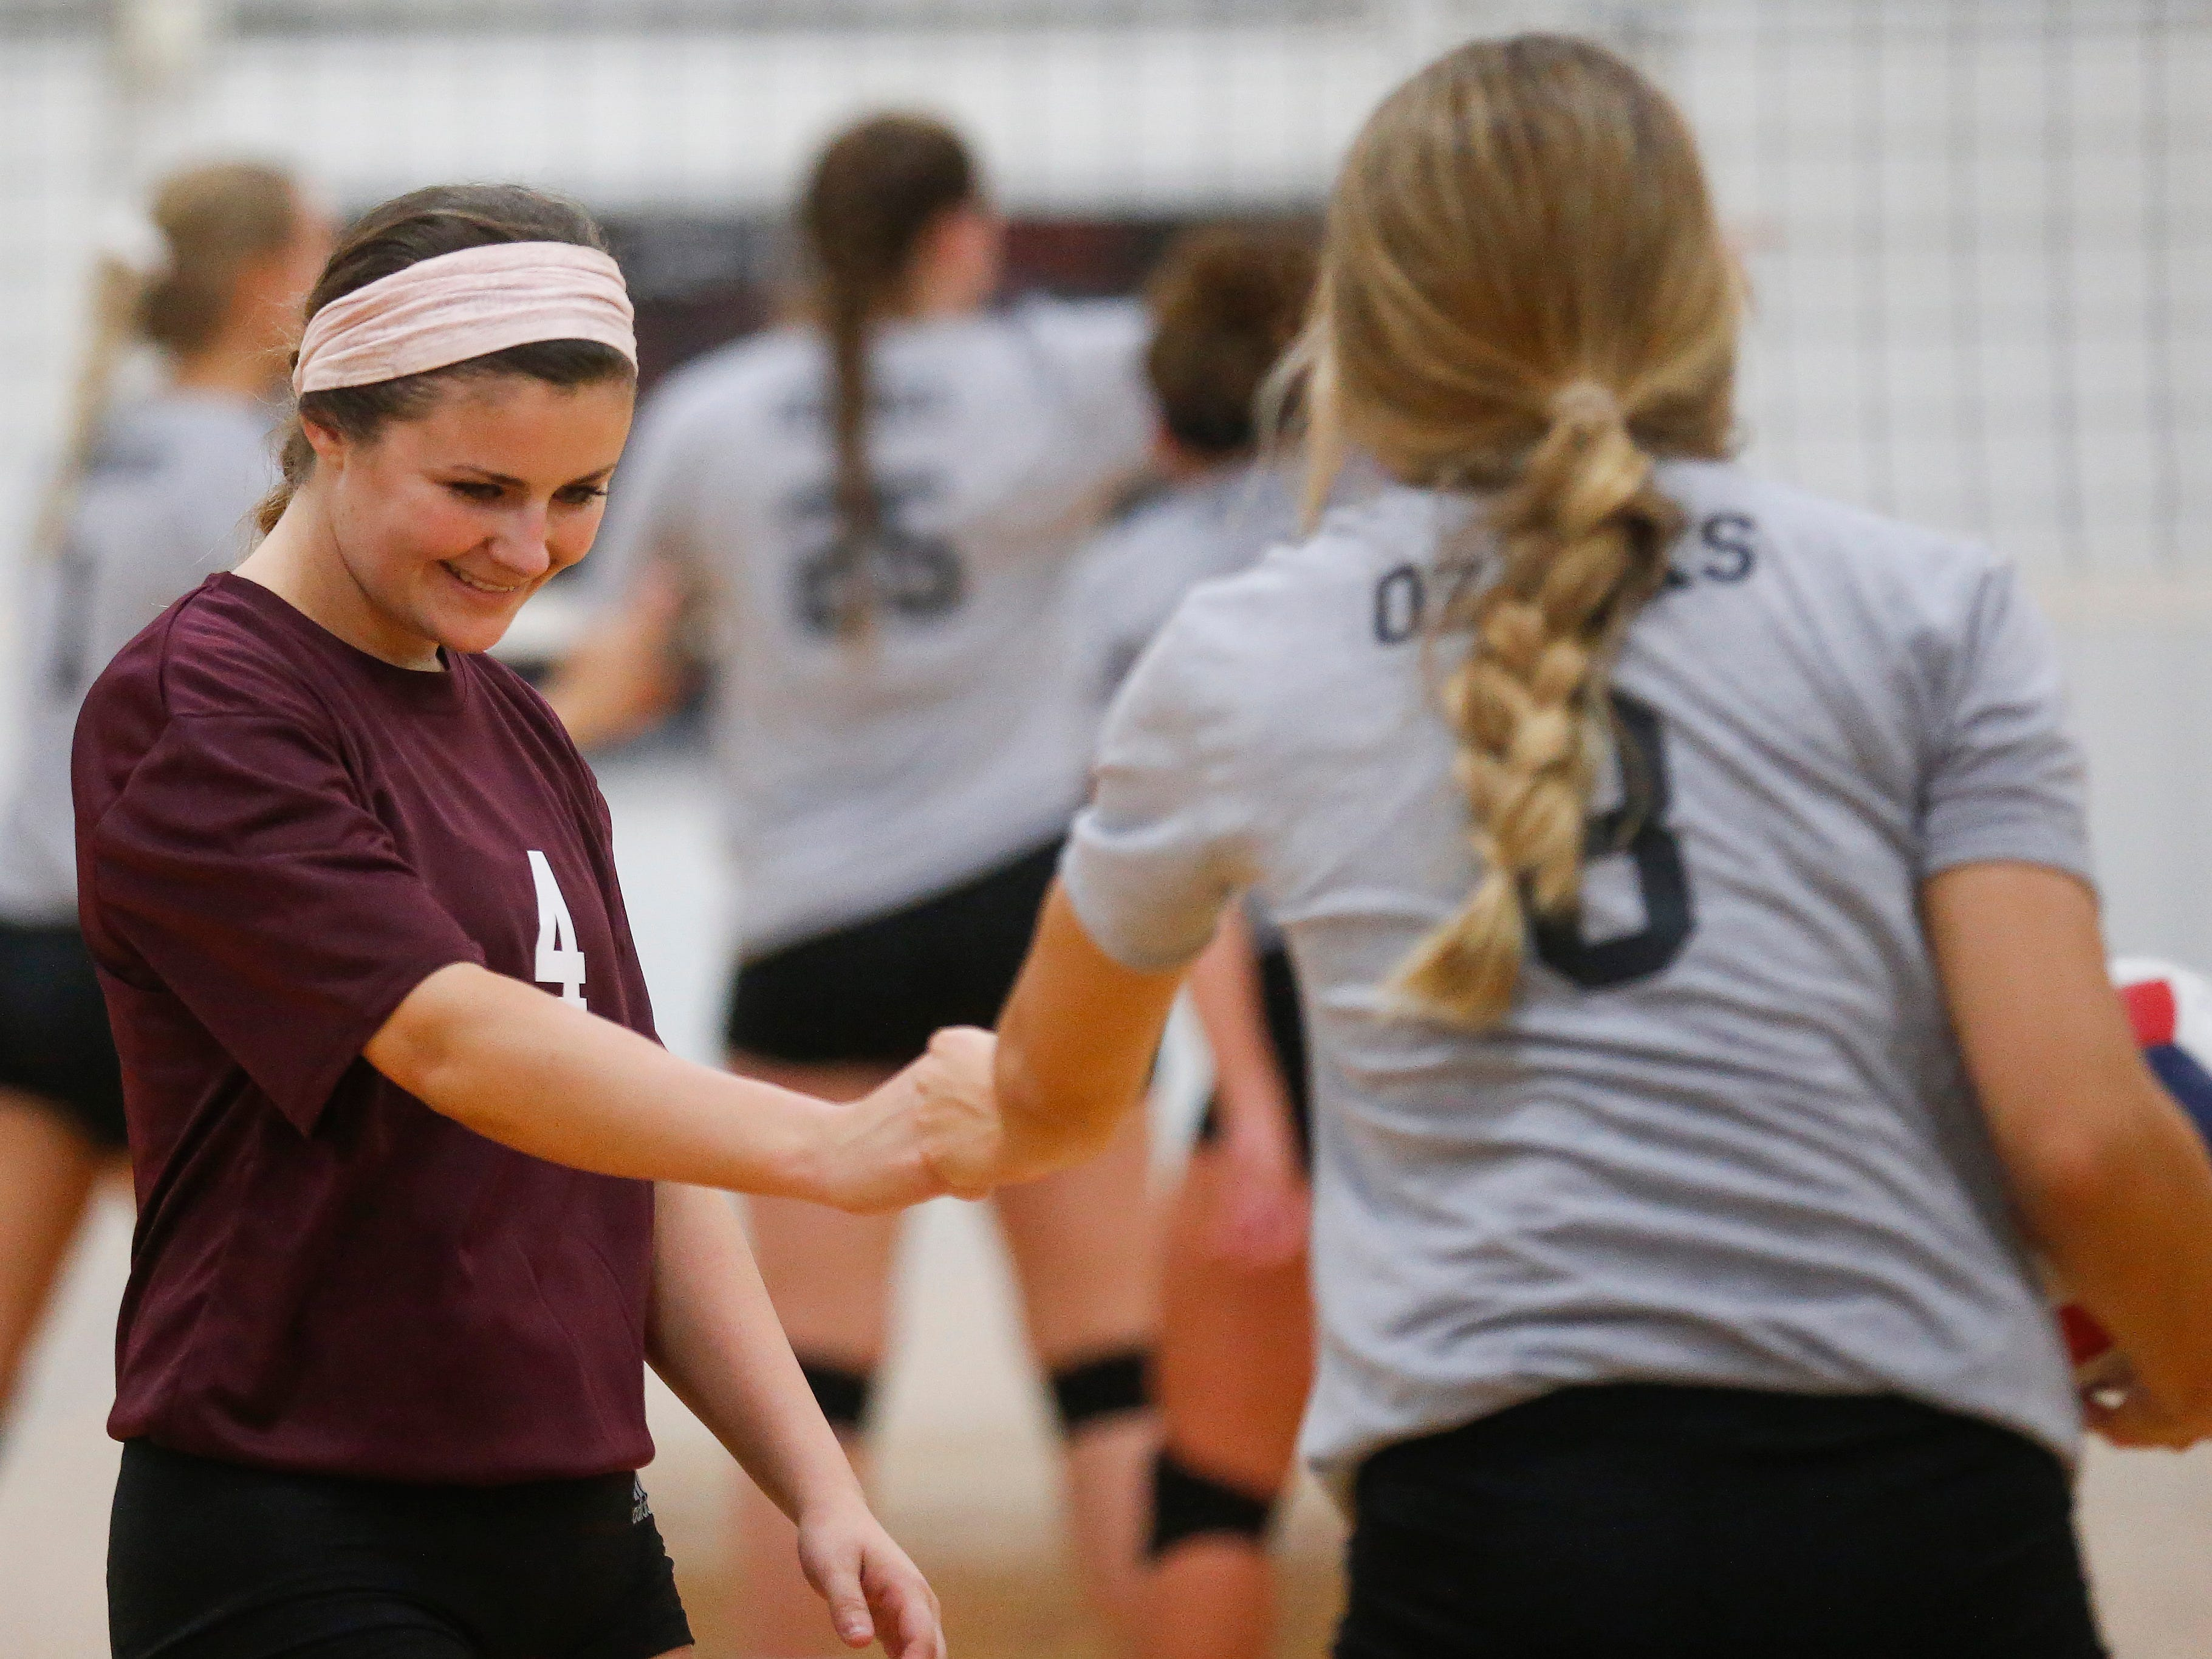 Haley Stallings (4) fist bumps Rielly Dobbs (8), both of the College of the Ozarks Bobcats during their game against the Williams Baptist Eagles during the 2018 Evangel Classic at The Courts in Springfield, MO., on Saturday, Sep. 8, 2018.